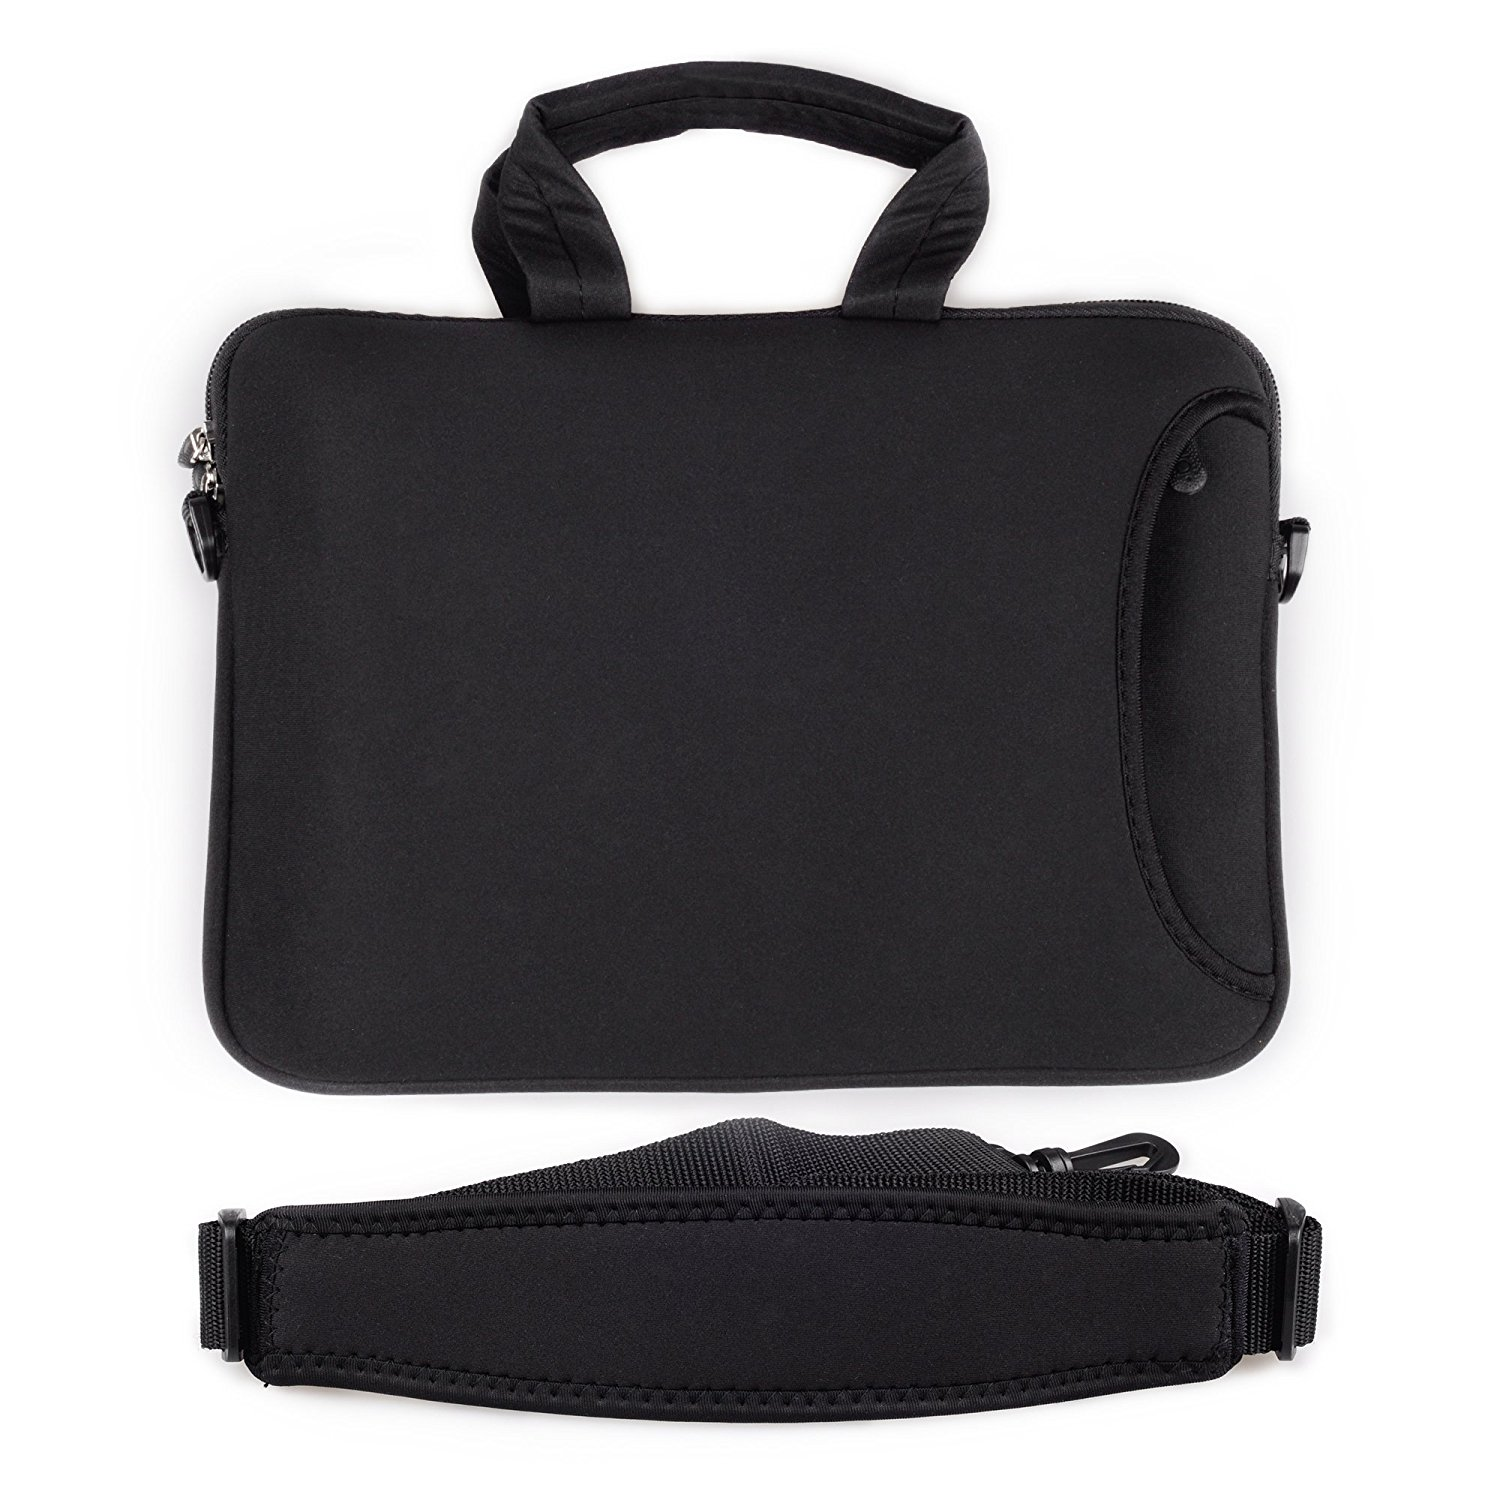 9972ffa2c56c Get Quotations · Sleeve Case Bag for ipad with Shoulder Strap and Handle